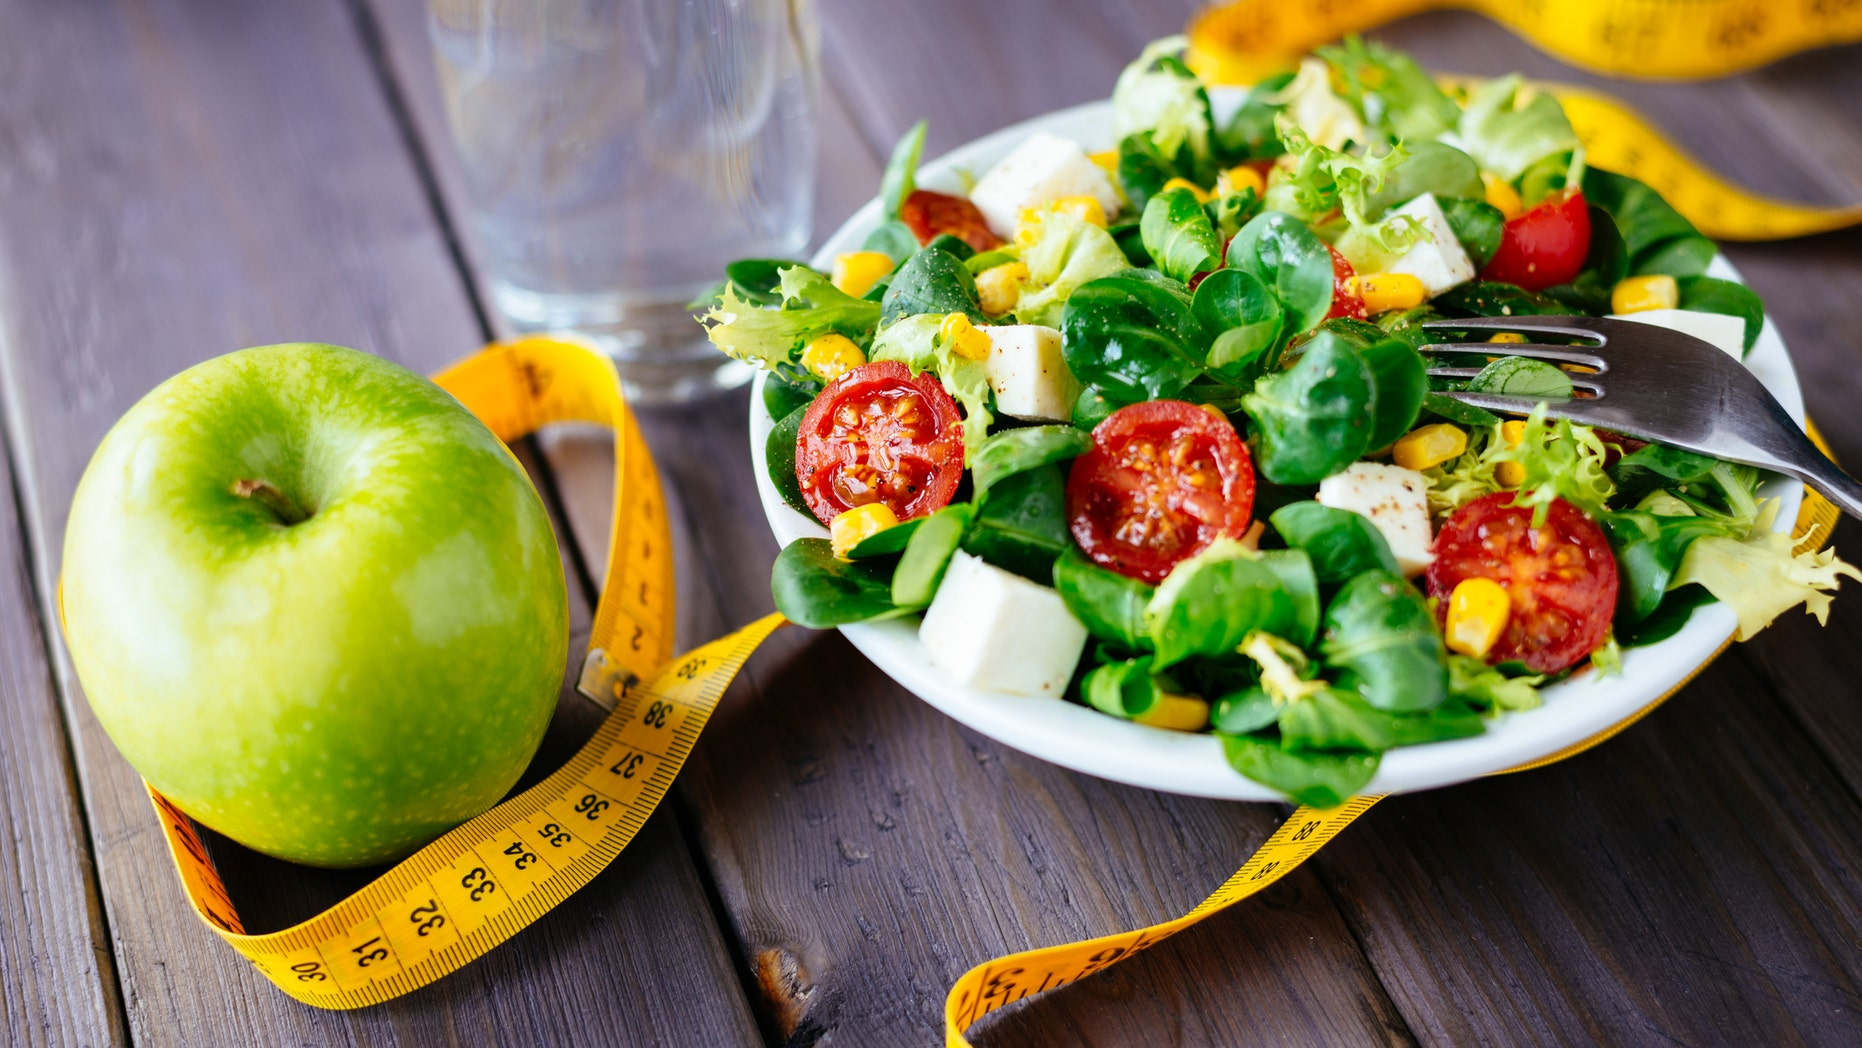 Fitness salad and apple fruit surrounded by measuring tape on rustic wooden table. Mixed greens, tomatos, diet cheese, olive oil and spices for healthy lifestyle concept.